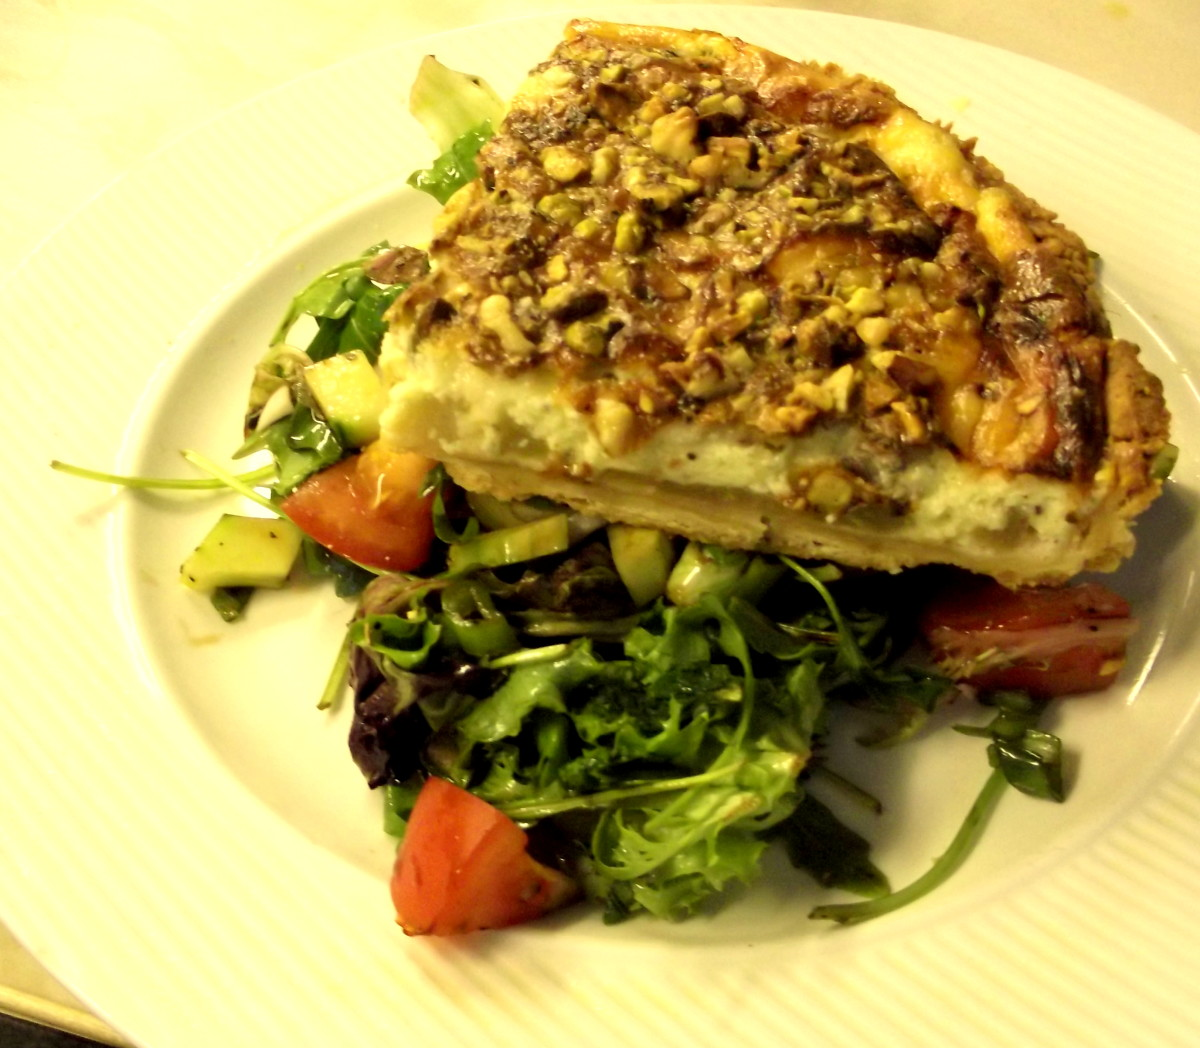 This quiche comes together quickly so you can sit down and enjoy your meal!